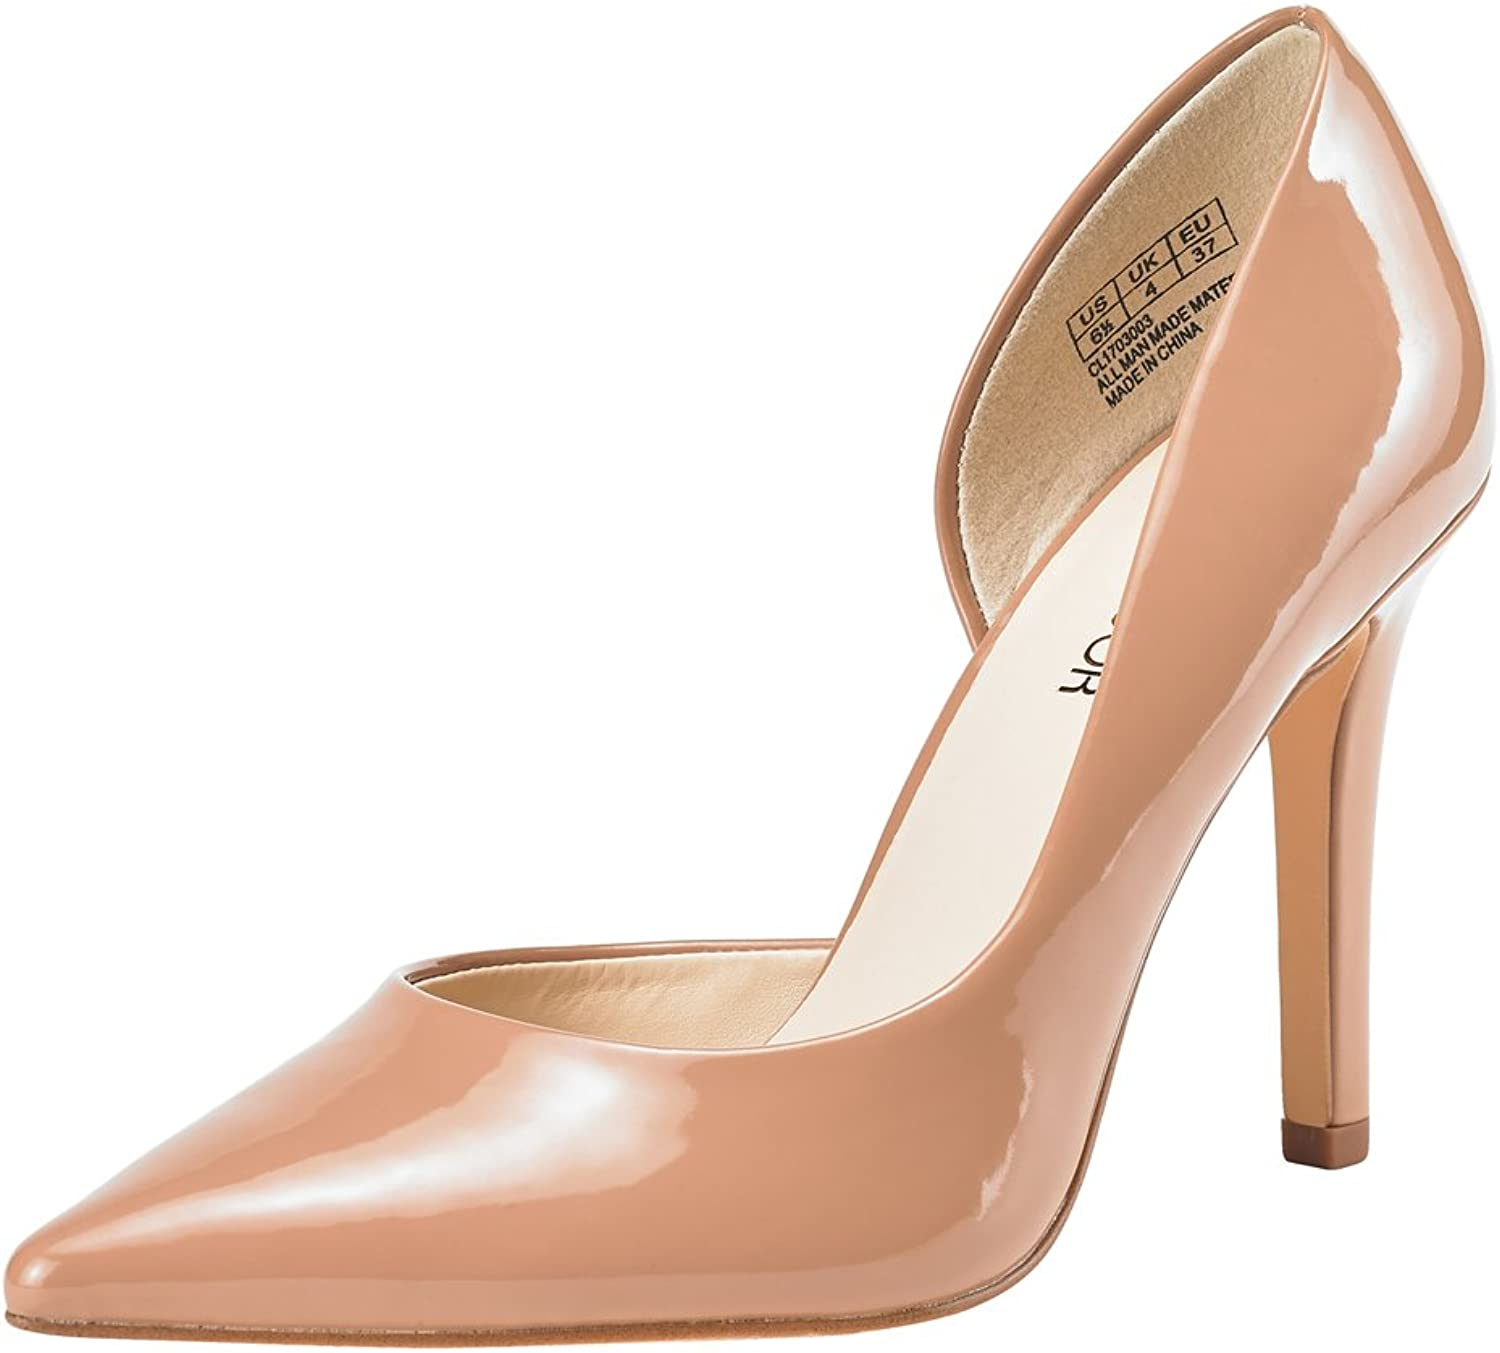 JENN ARDOR Stiletto High Heel shoes for Women  Pointed, Closed Toe Classic Slip On Dress Pumps